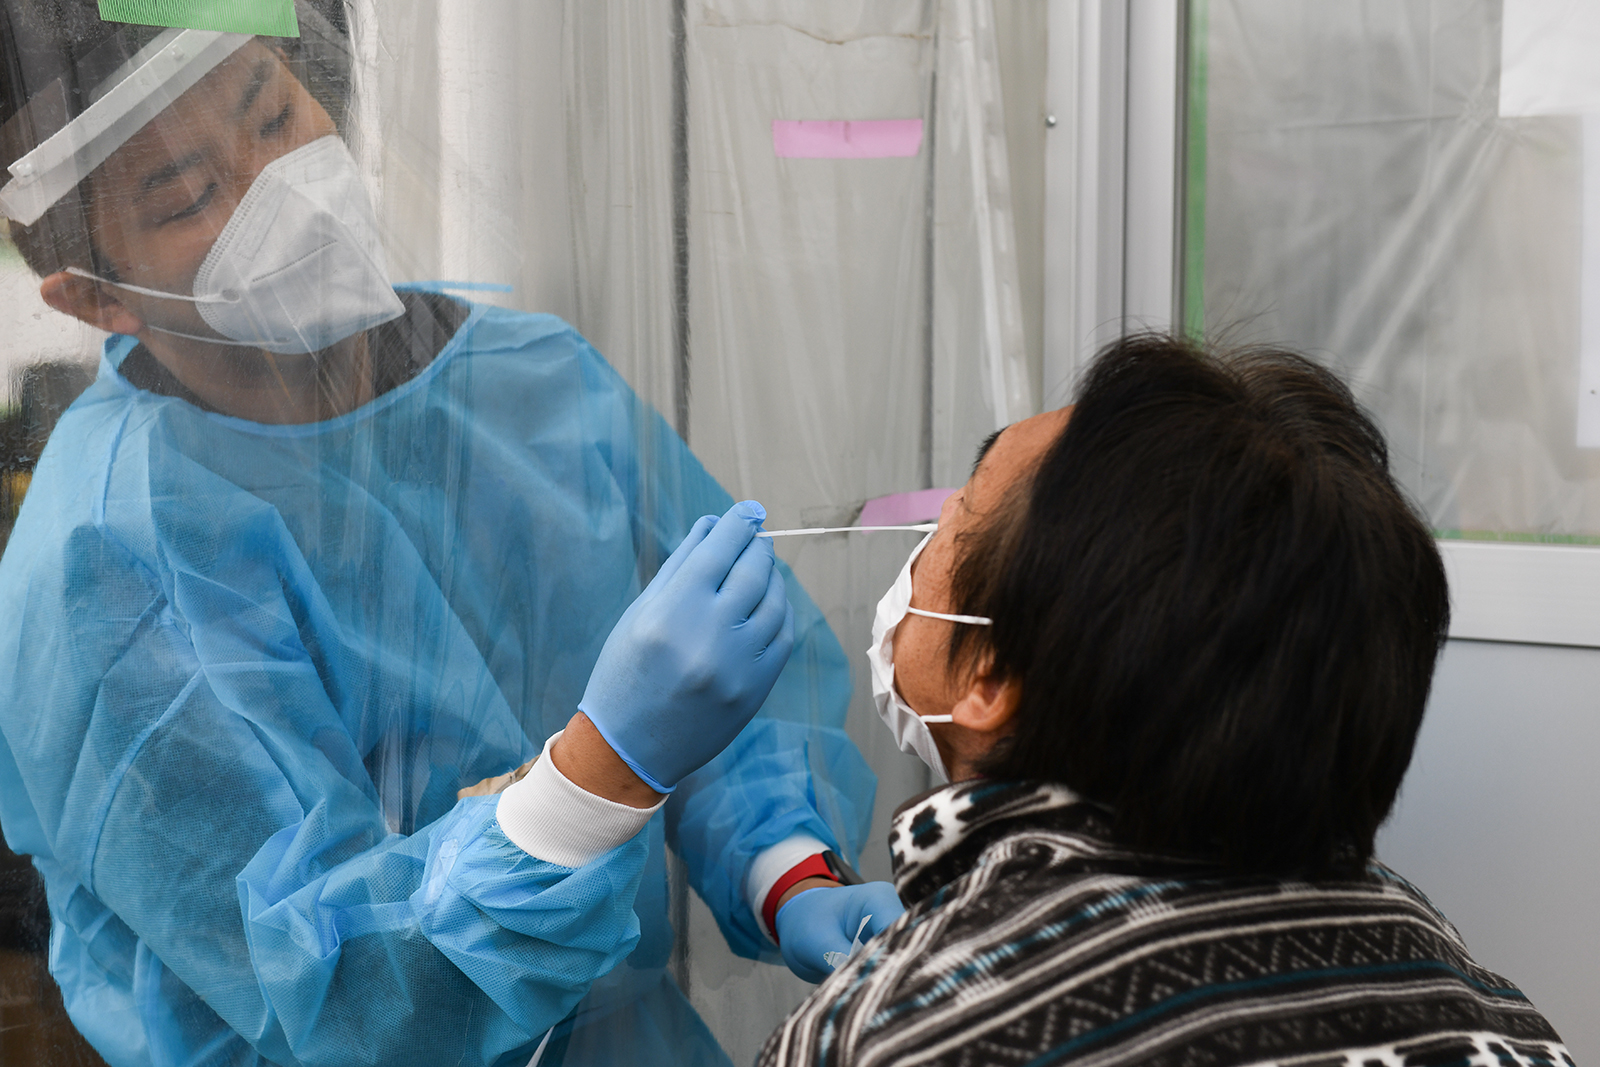 A healthcare worker wearing personal protective equipment (PPE) collects a swab sample at the coronavirus testing center set up at Fujimino Emergency Hospital in Miyoshi-machi, Saitama Prefecture, Japan, on December 9.